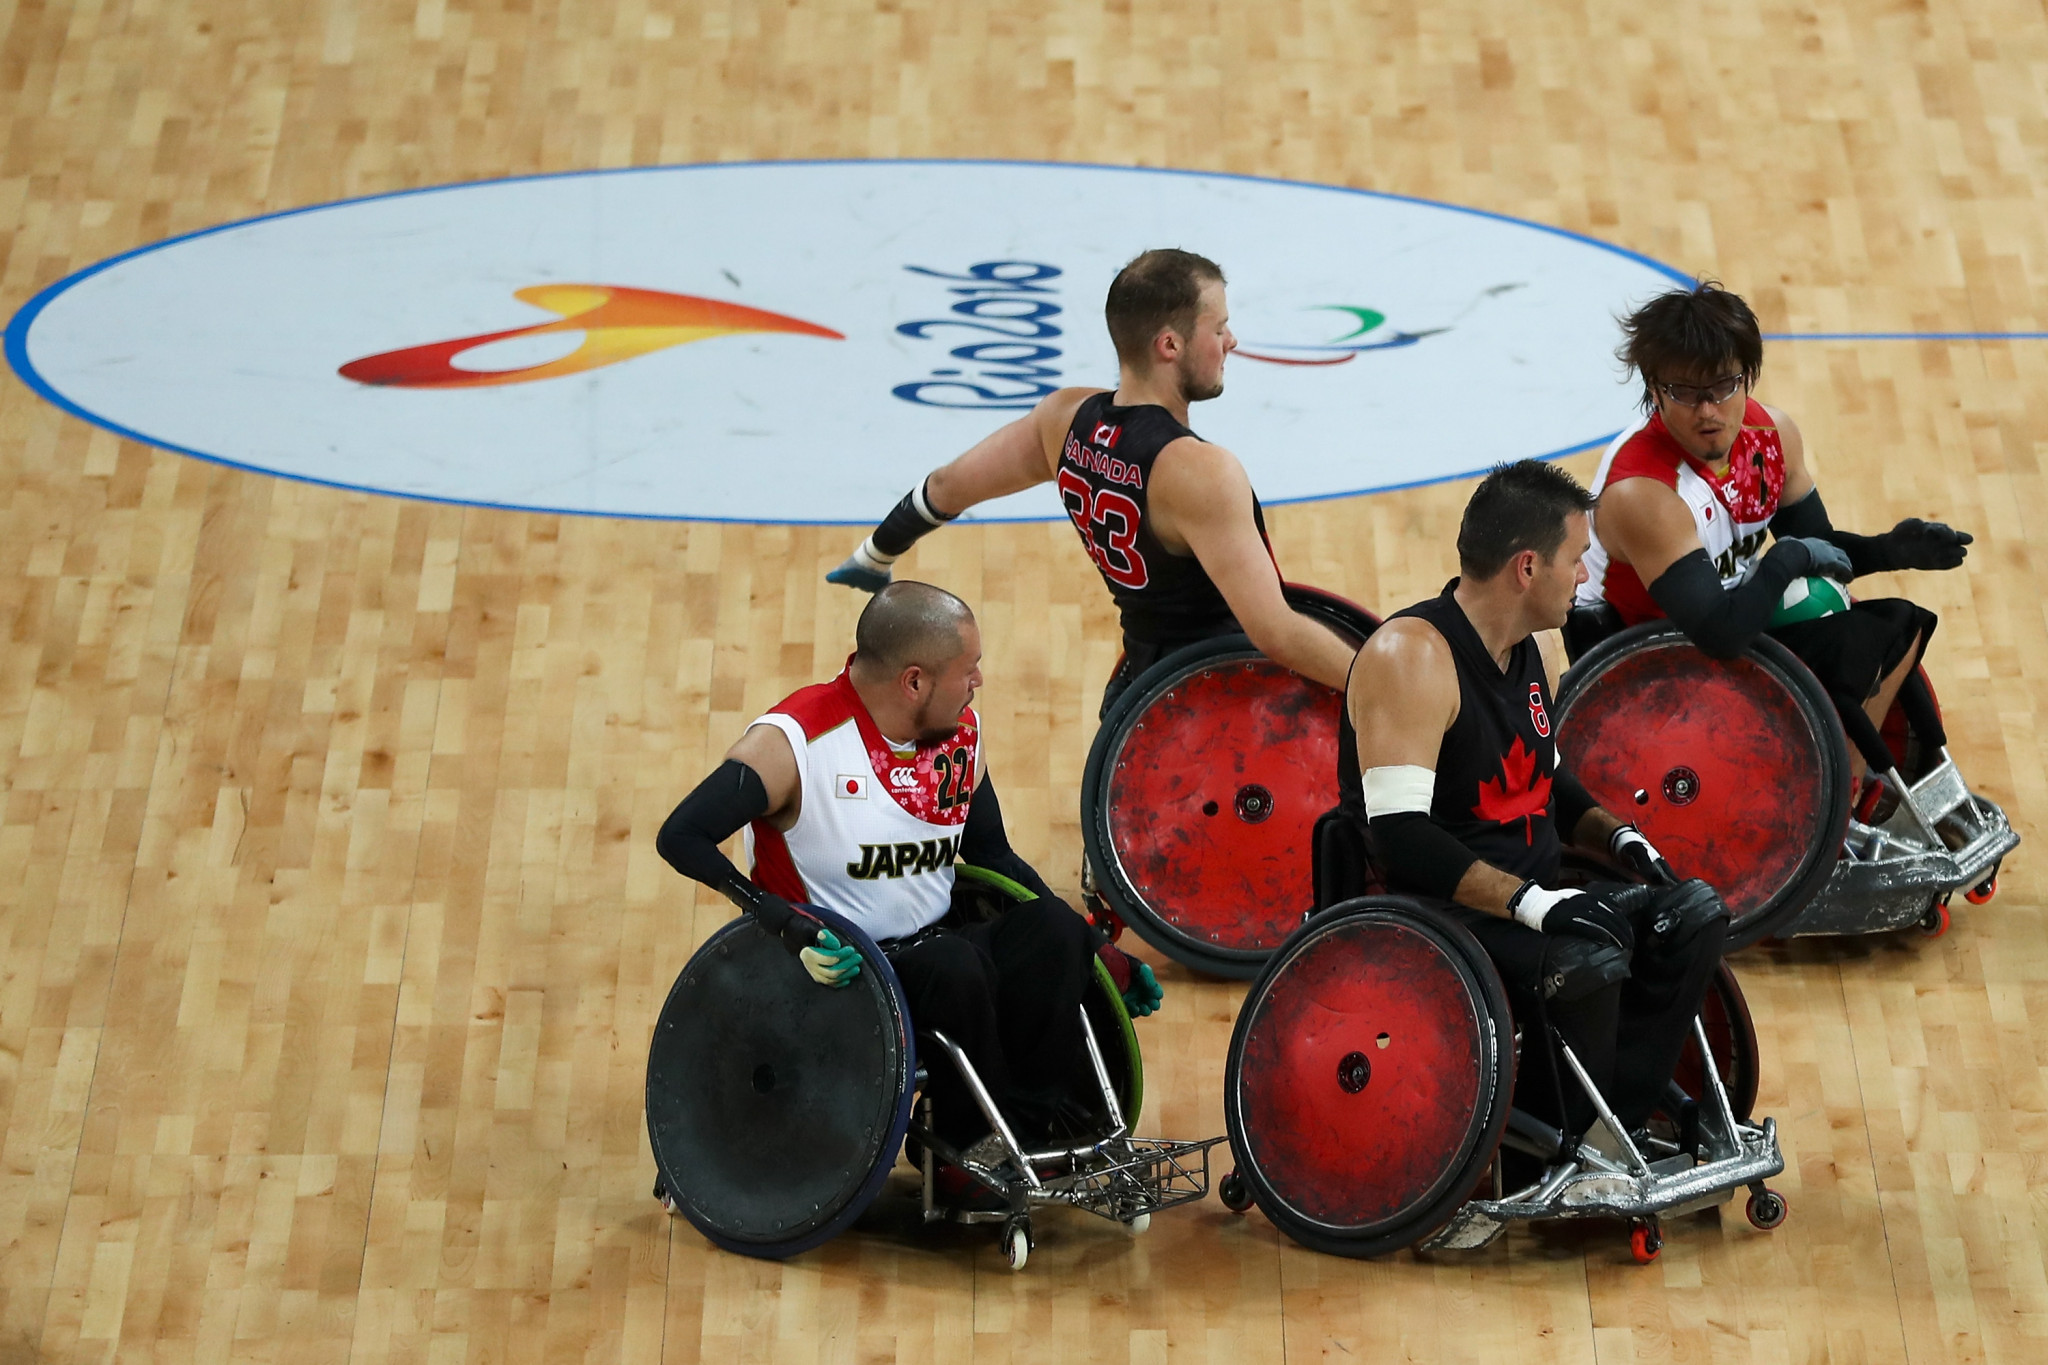 Canada will be looking to secure a sixth consecutive appearance at the Paralympic Games ©Getty Images